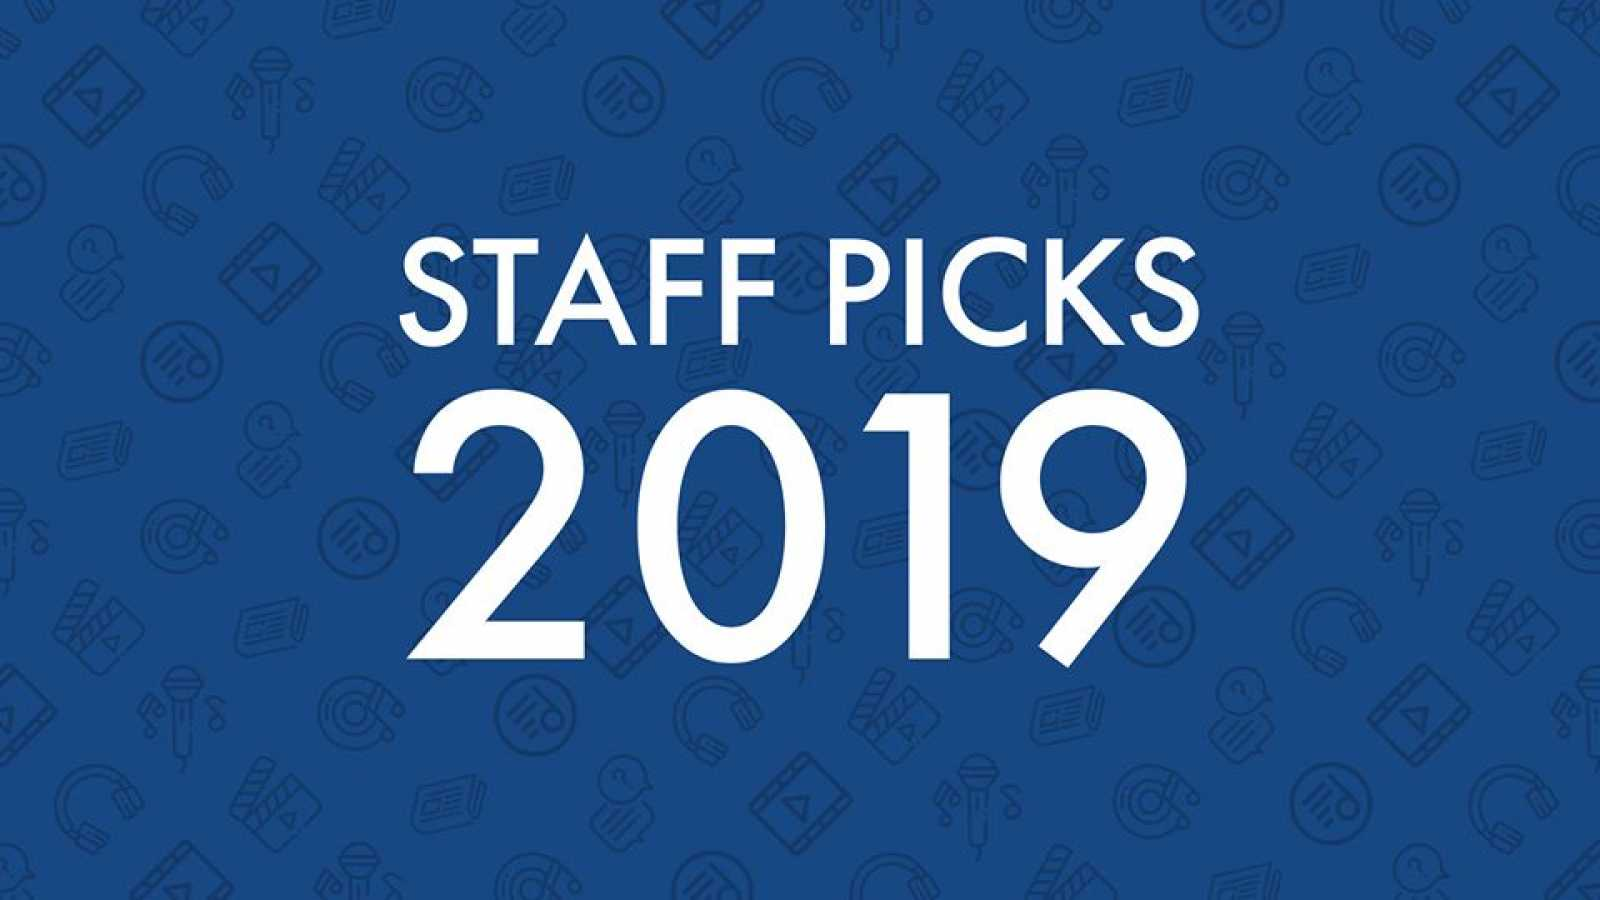 JaMEs Staff Picks 2019 Playlist